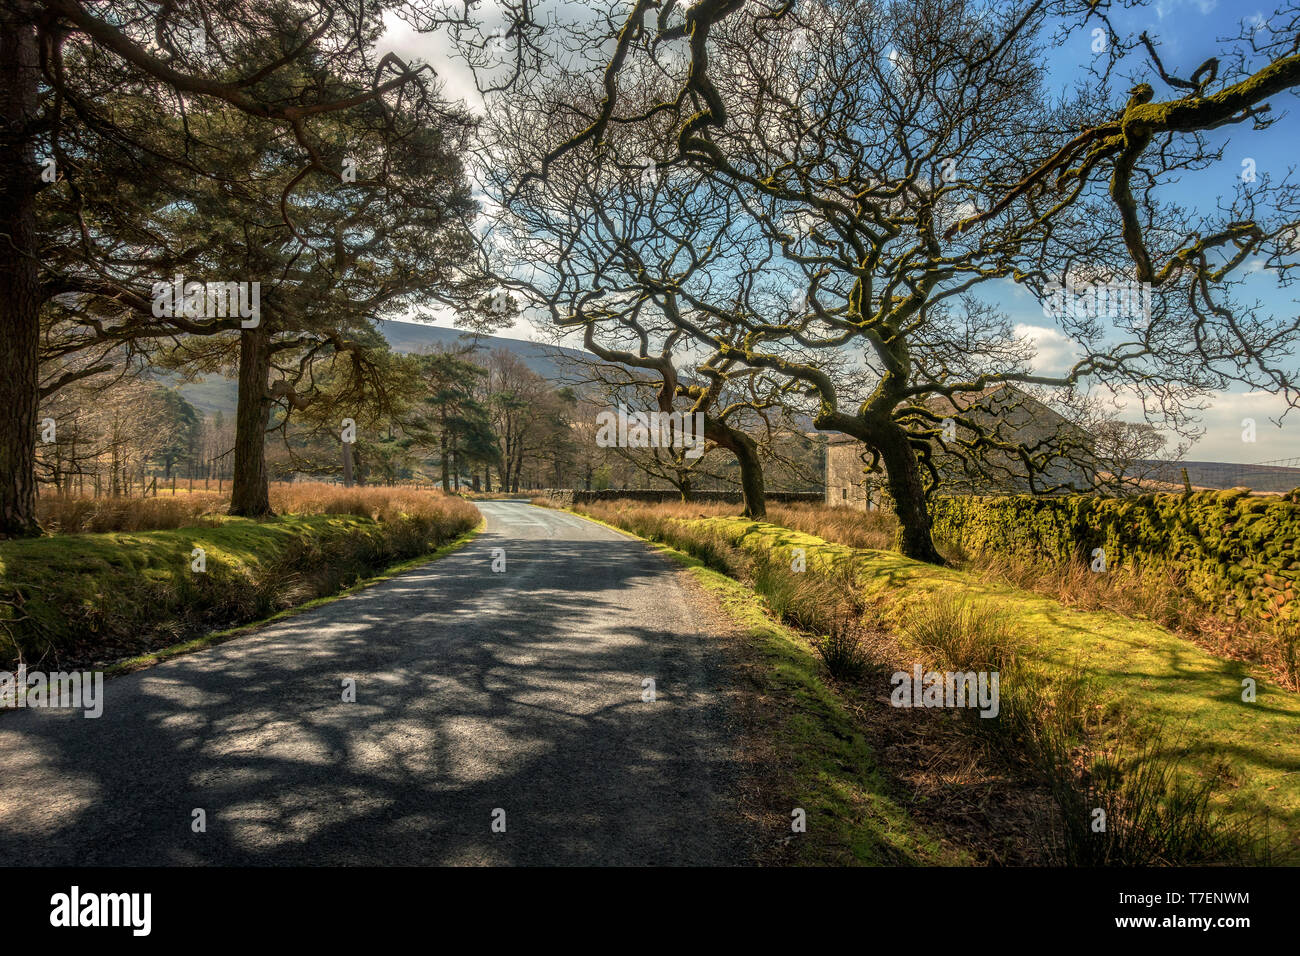 Picturesque landscape view of the road through twisted trees in the beautiful Trough of Bowland, Lancashire - Stock Image